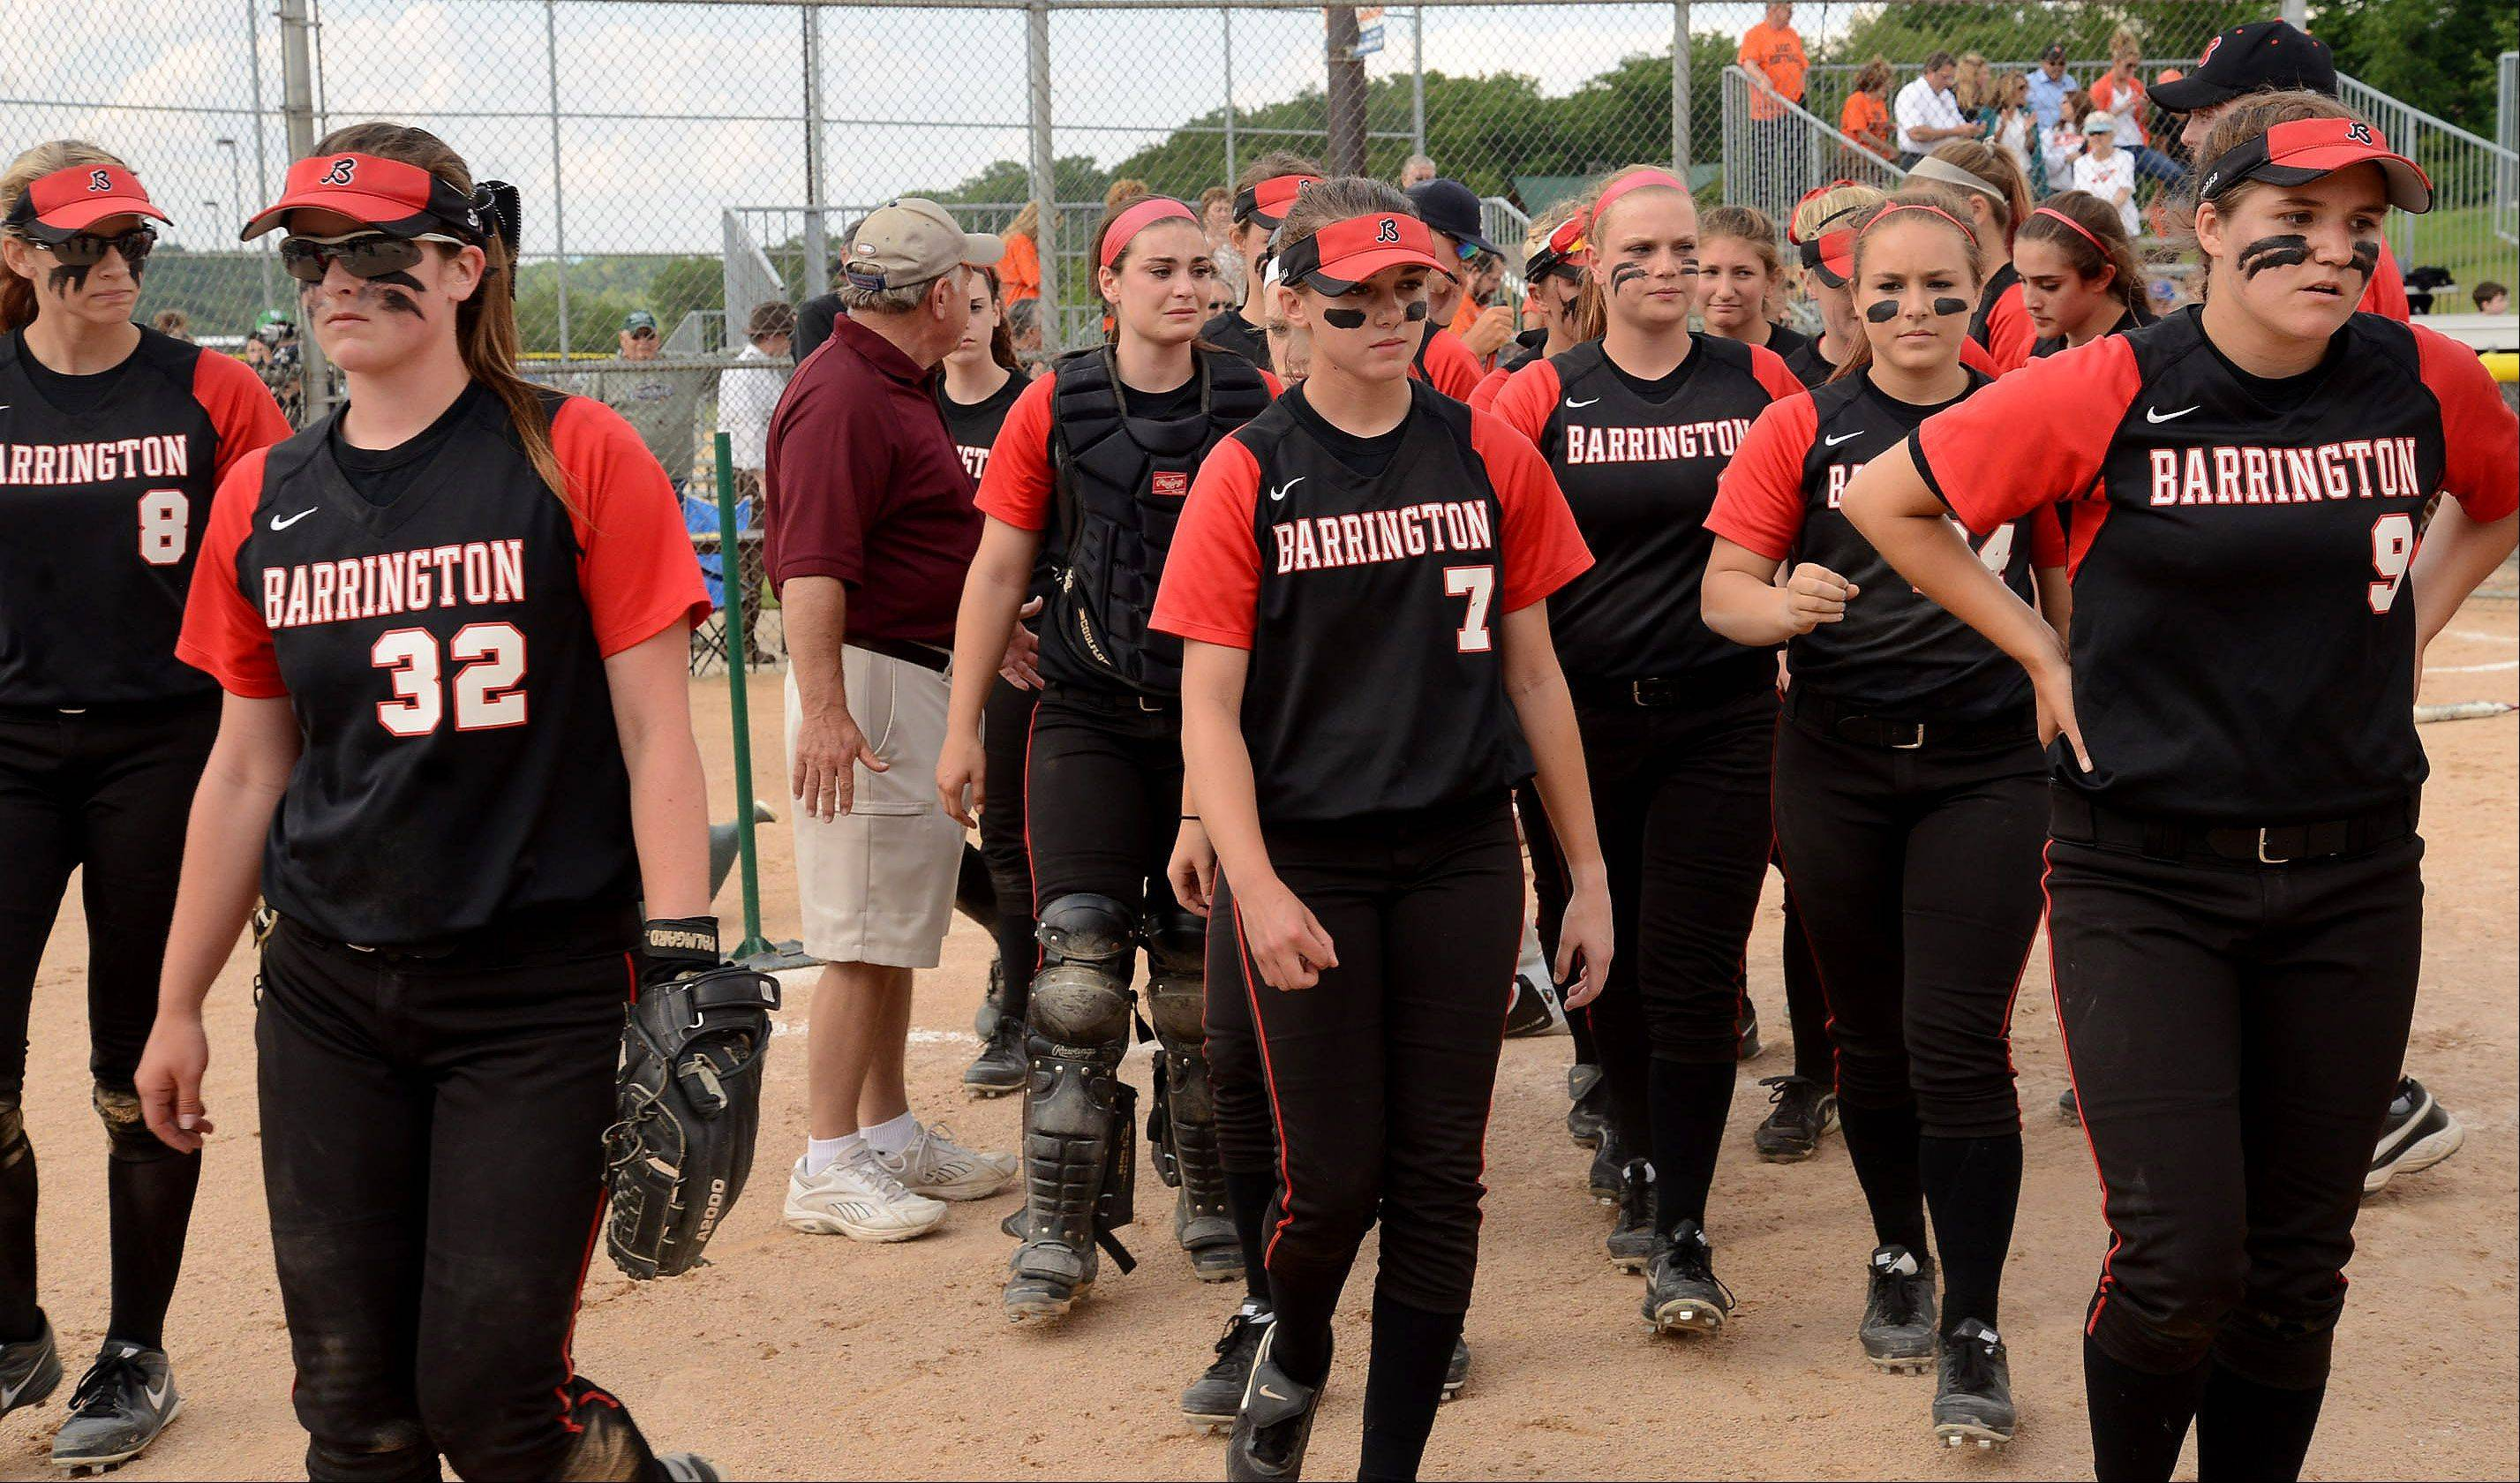 Barrington players leave the field.